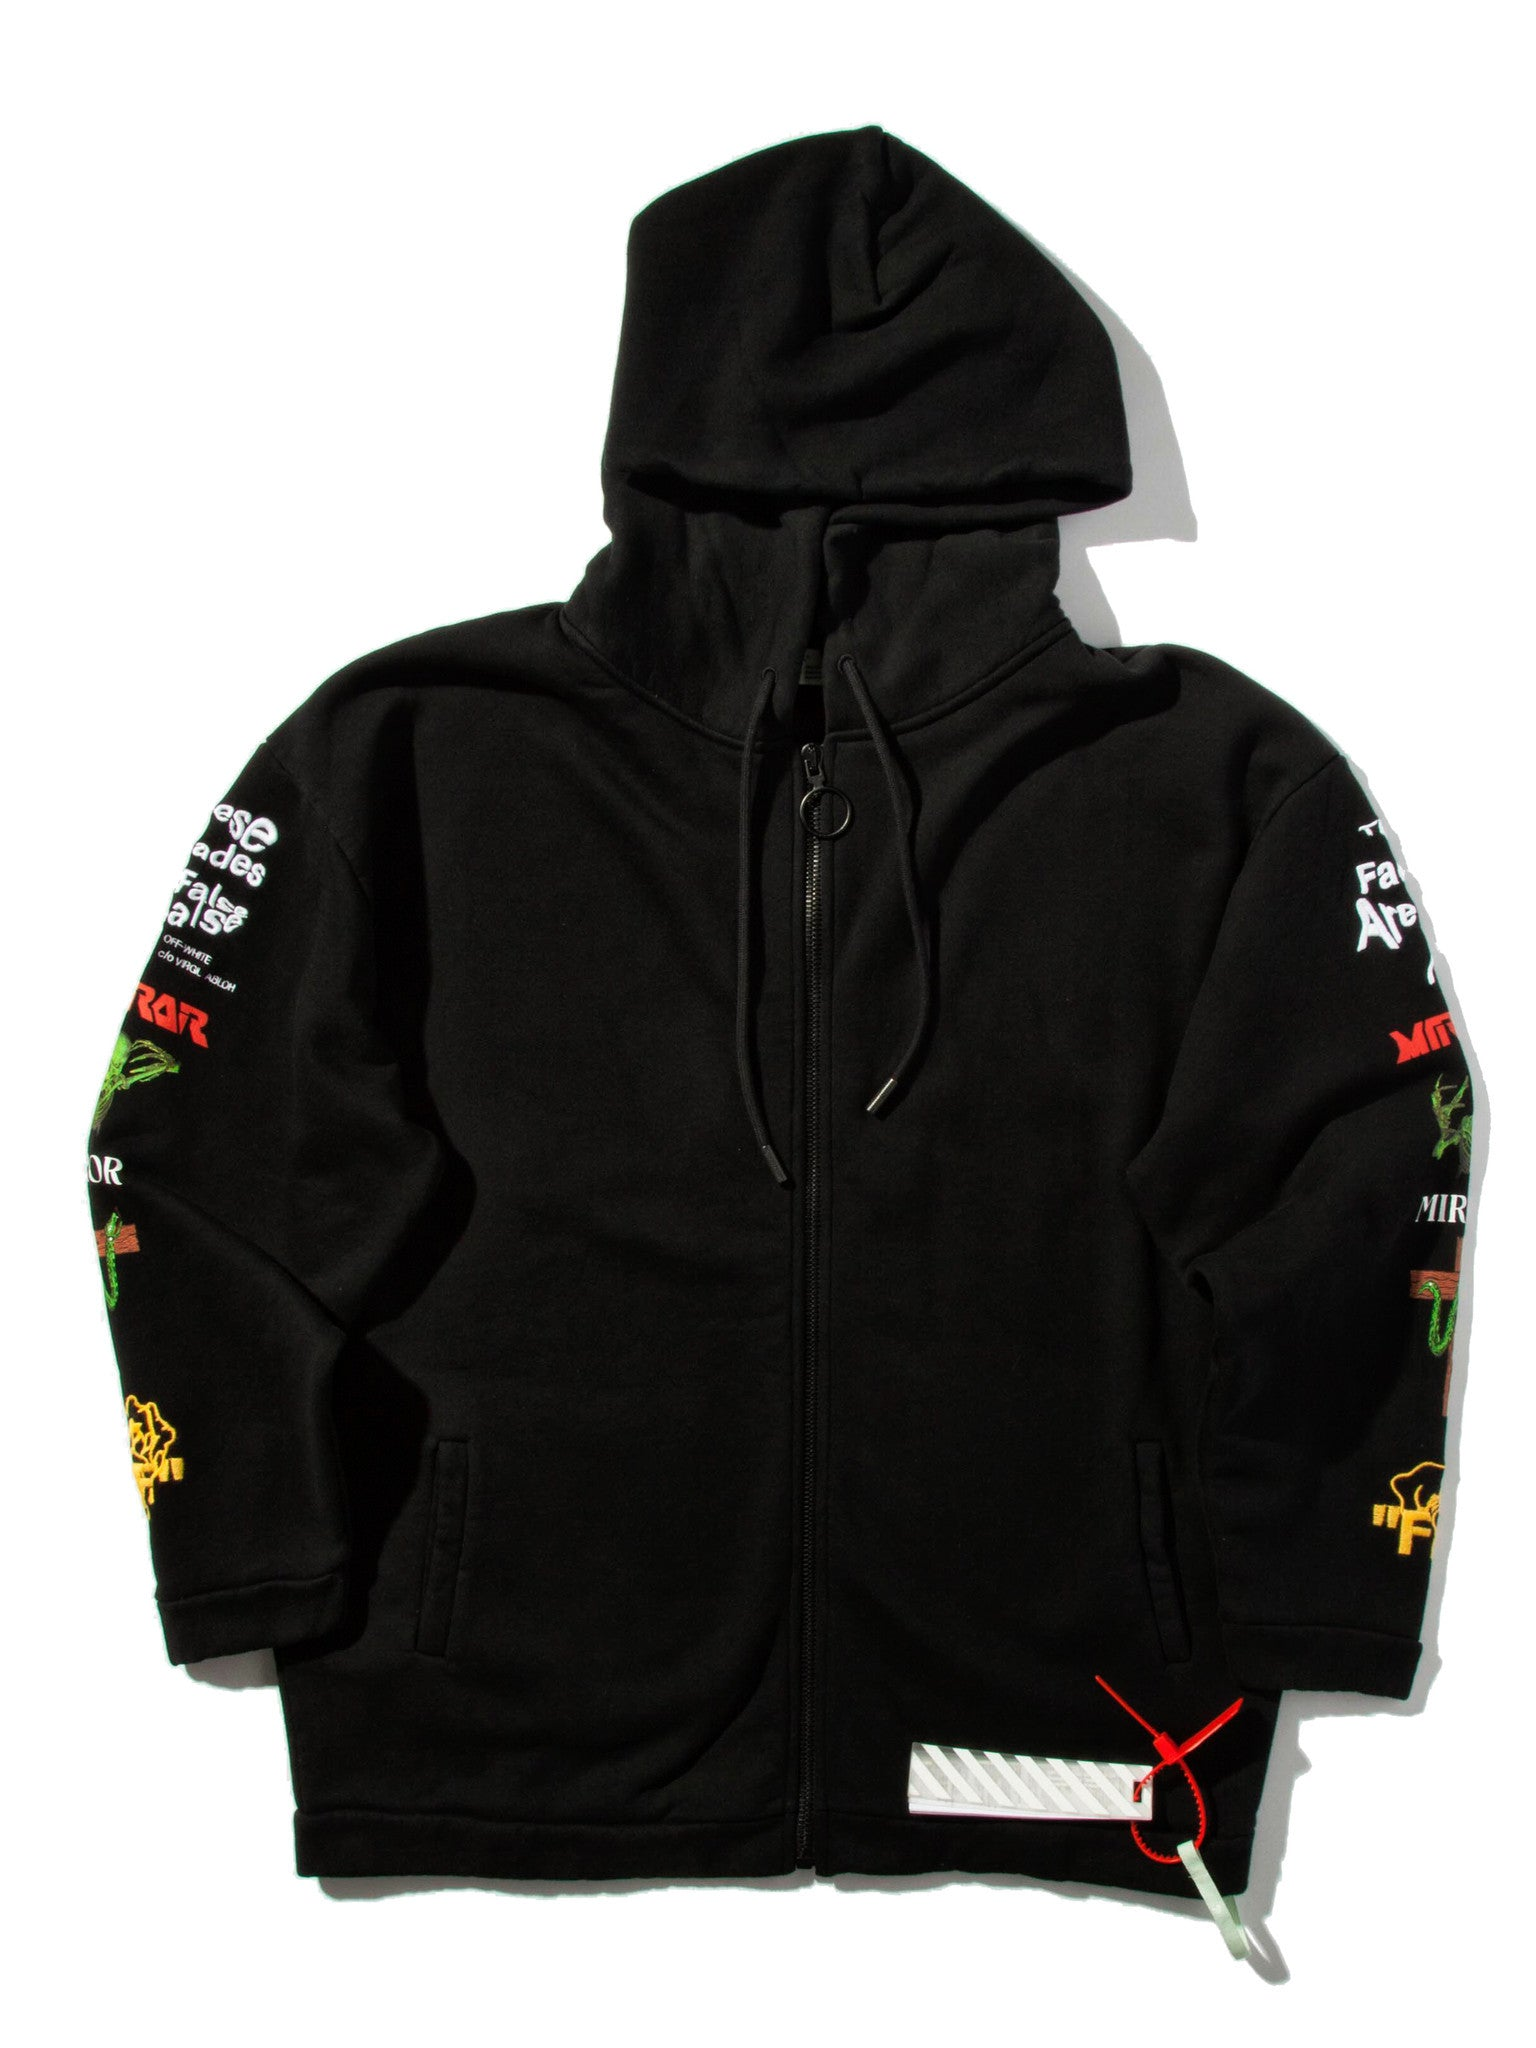 Black Mix Rock Hooded Sweatshirt 7